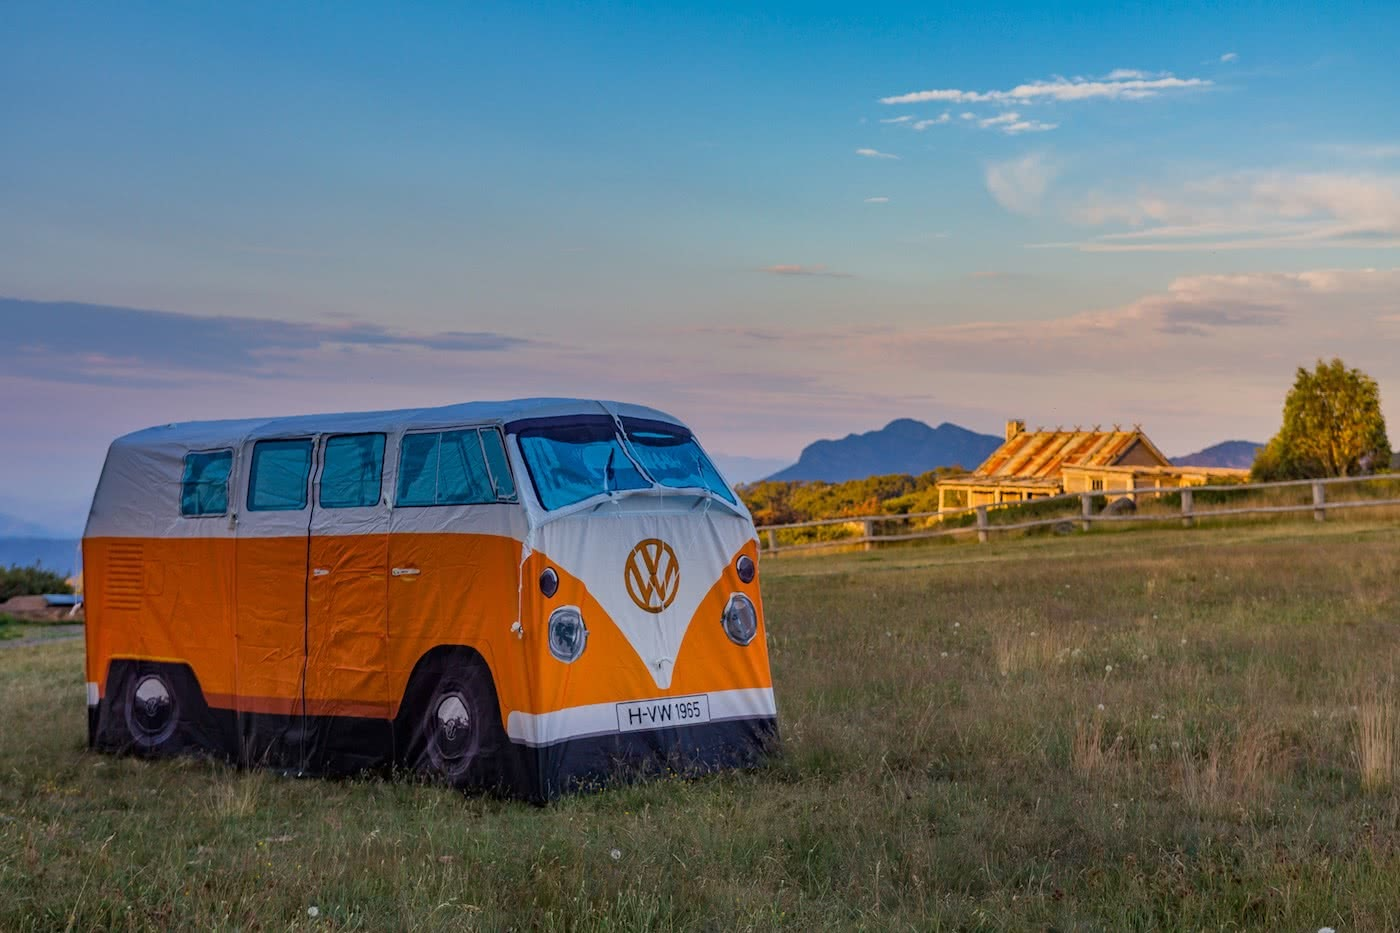 Rob Embury, Kombi Tent review